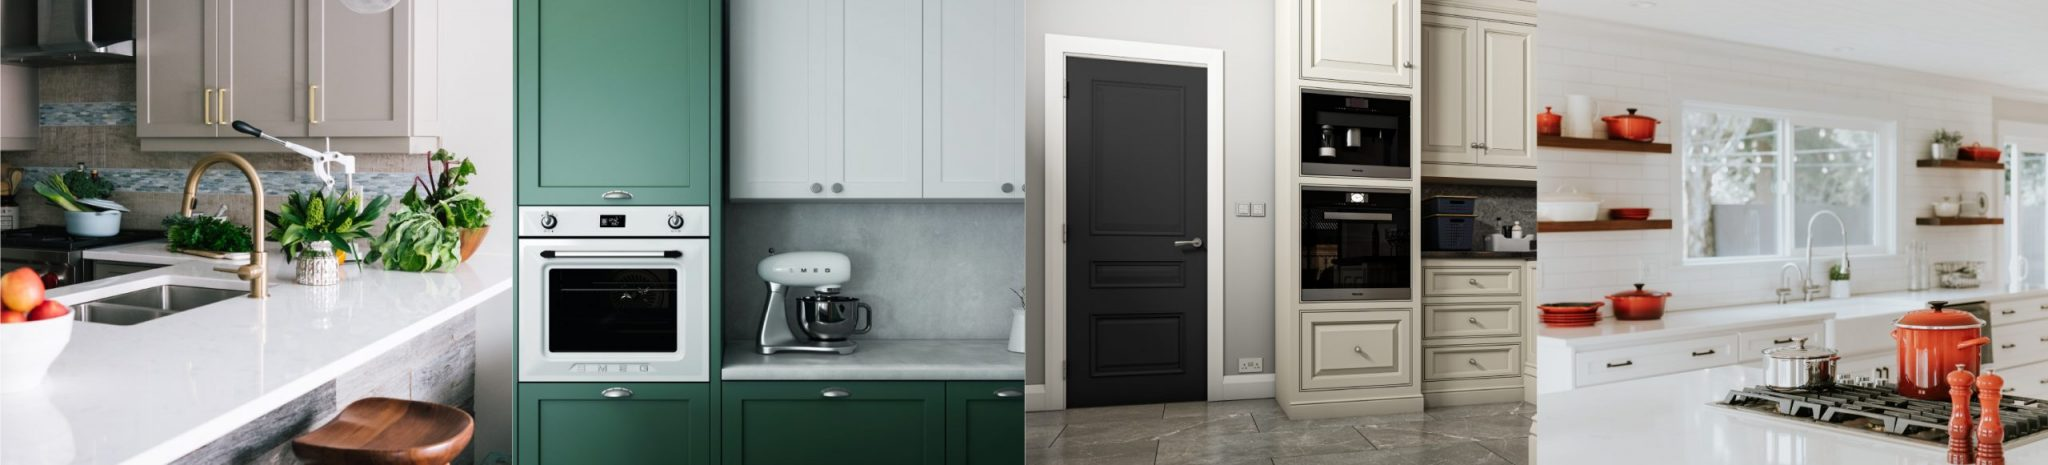 Combination of for Kitchen images showing the current on trend colours to use in the kitchen. It also features our Windsor door in black